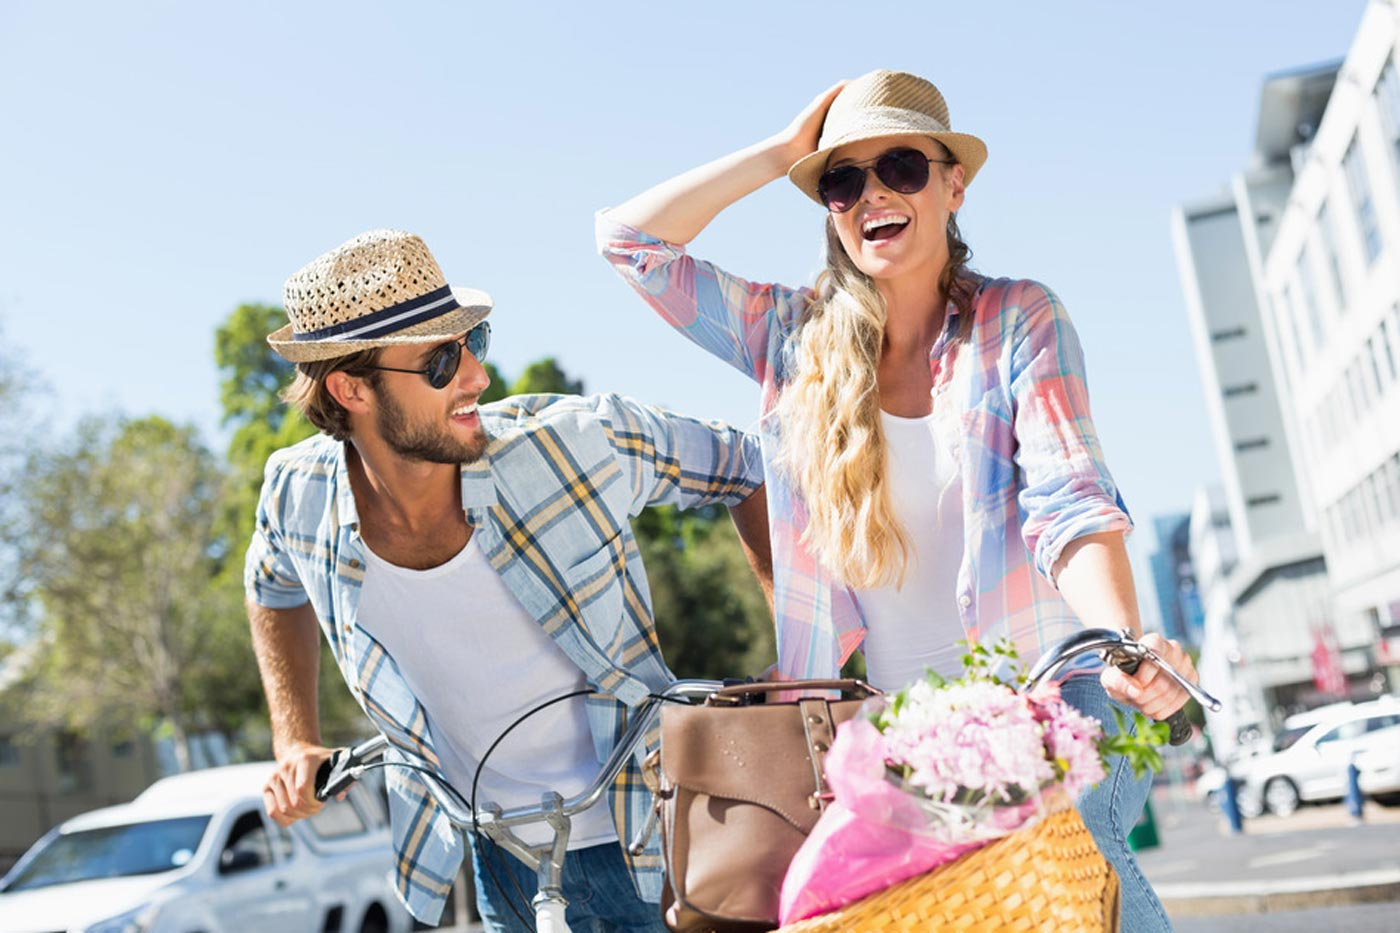 photodune-10212881-attractive-couple-on-a-bike-ride-on-a-sunny-day-in-the-city-s